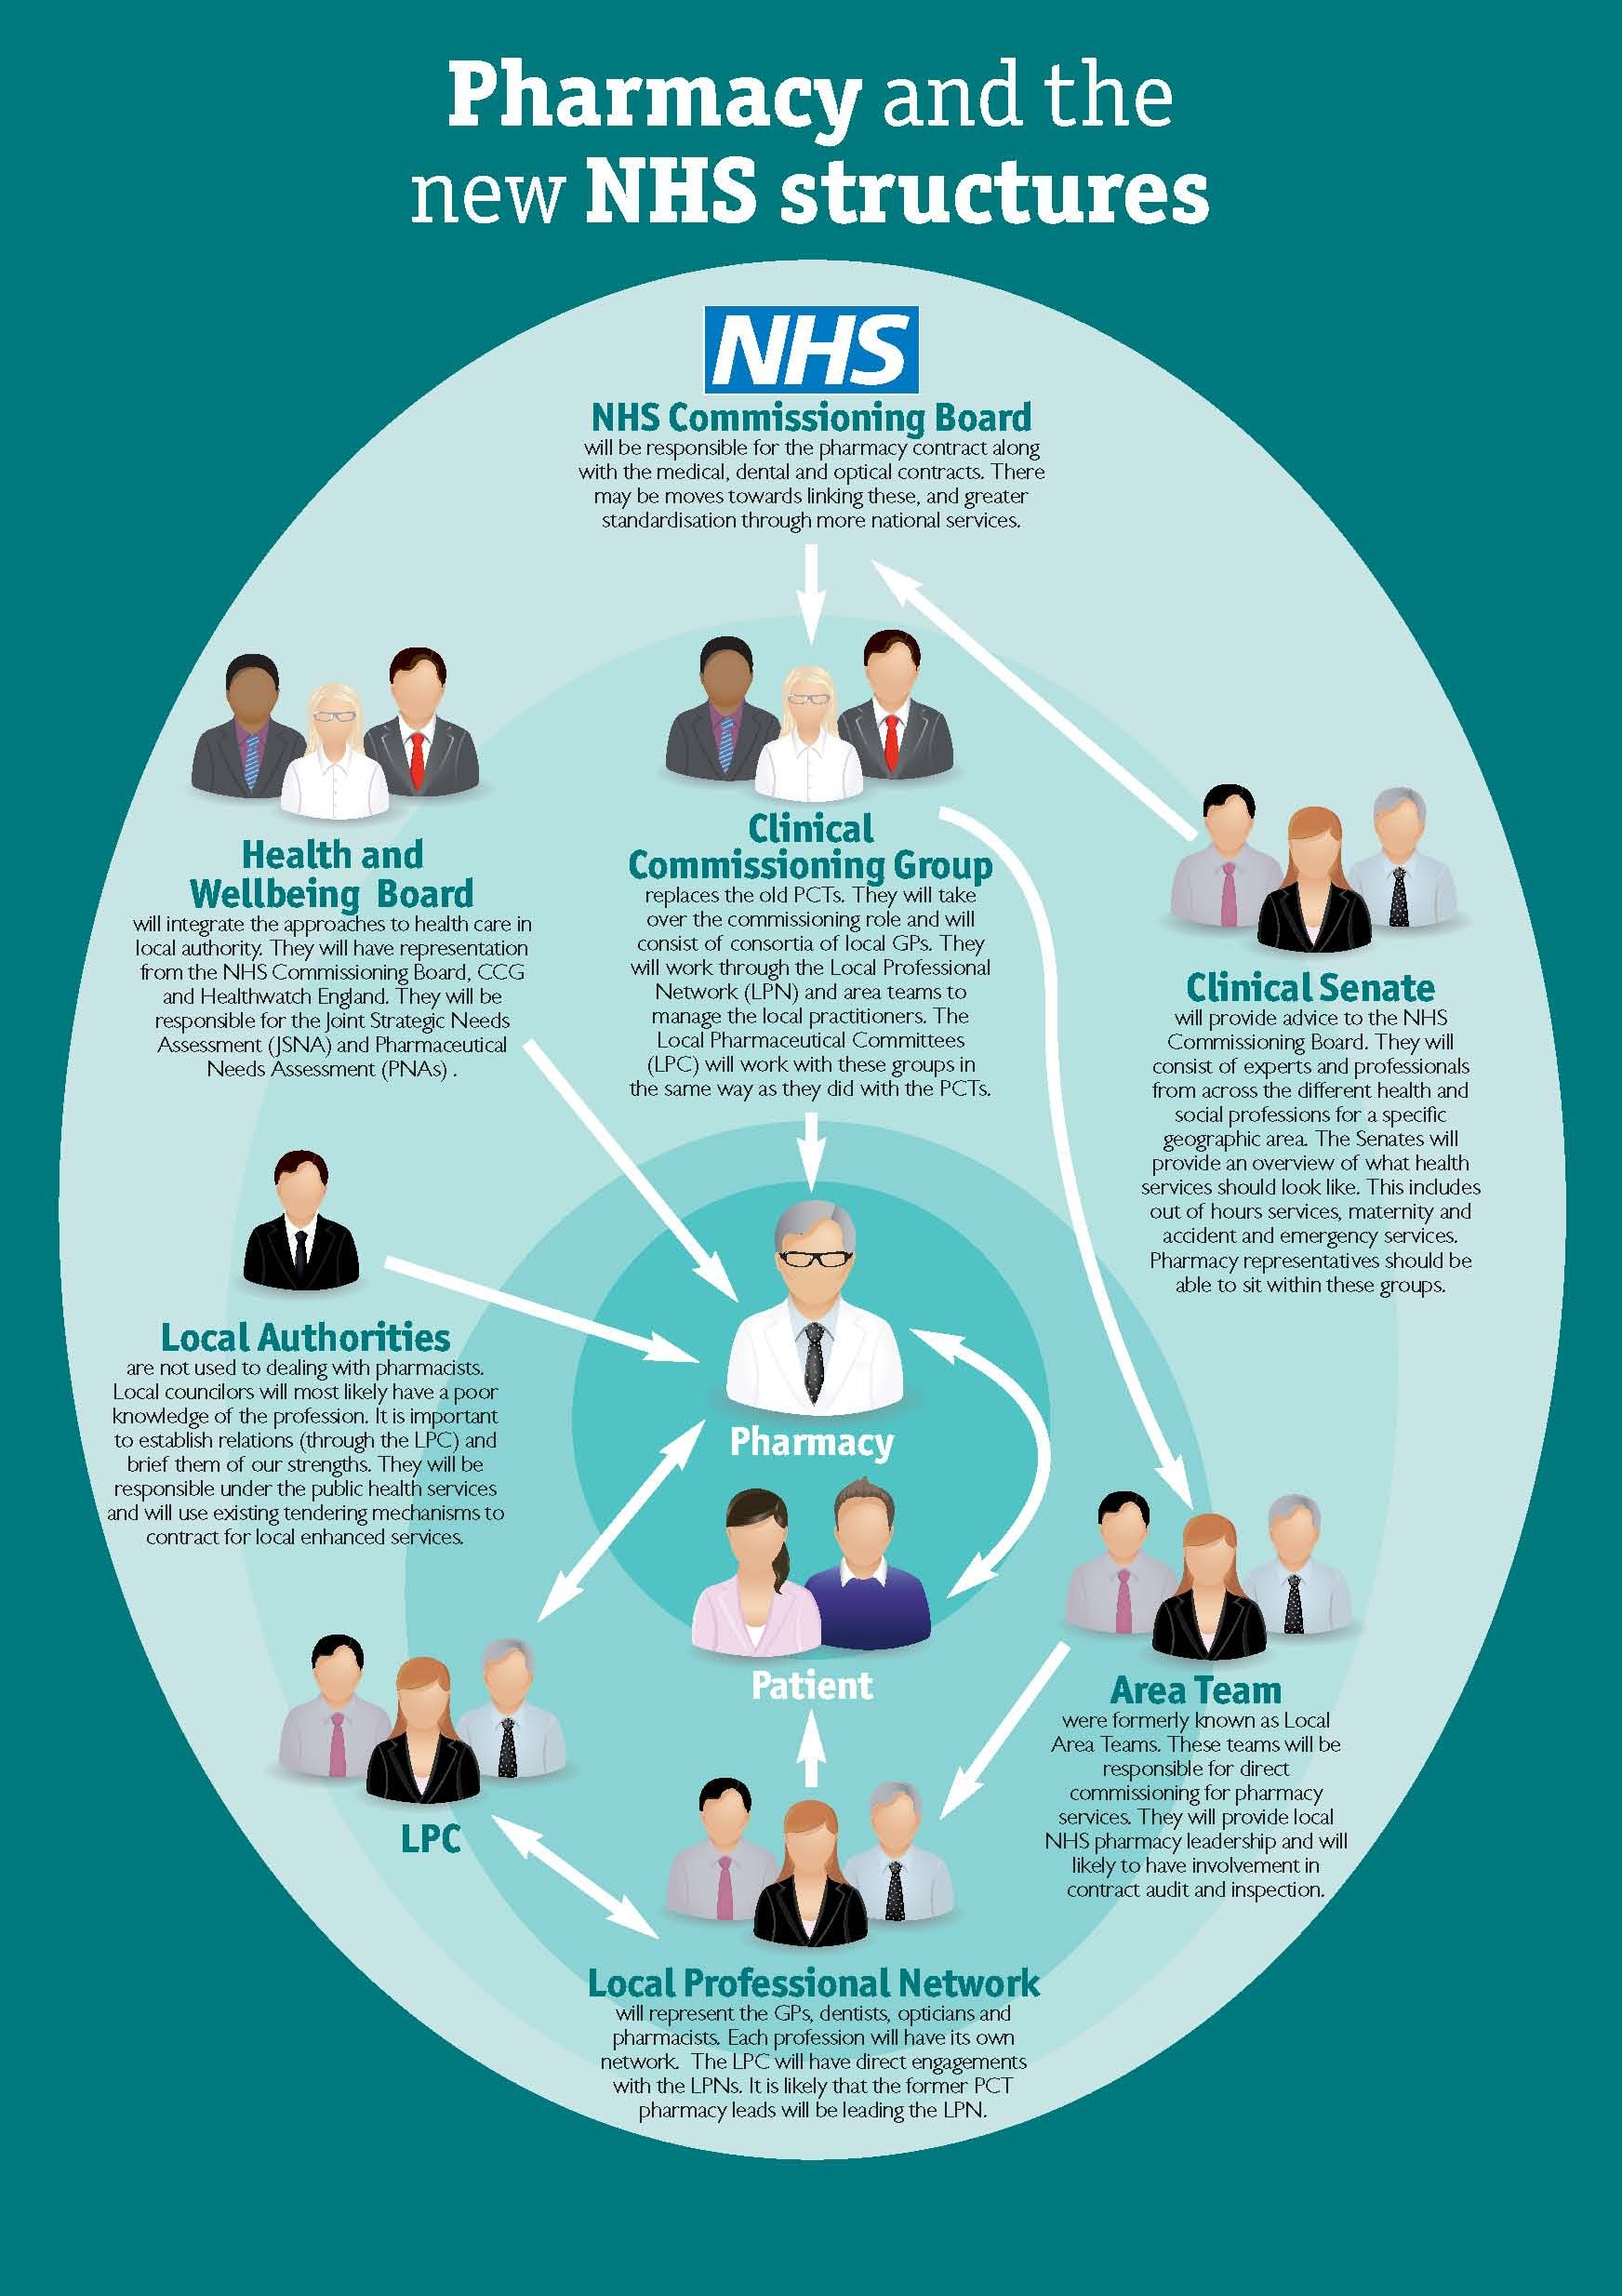 This Graphic Outlines The Impact Of The Nhs Structural Changes On